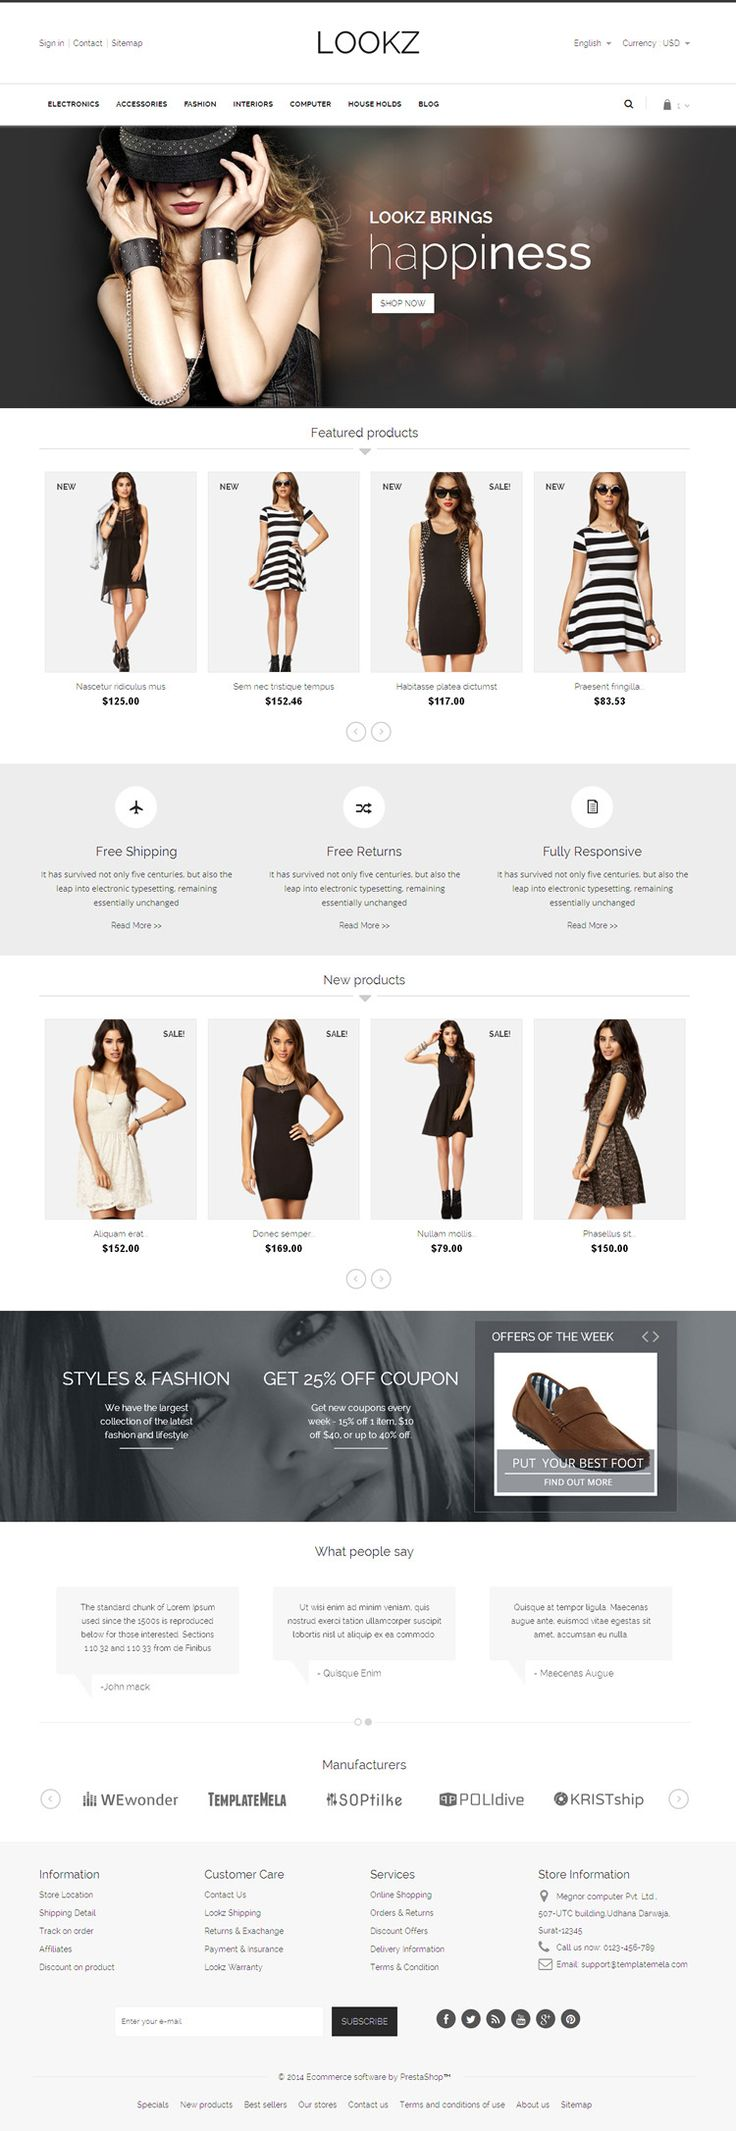 Lookz Prestashop Parallax Template - Download http://themeforest.net/item/lookz-prestashop-parallax-template/6917294?ref=pxcr